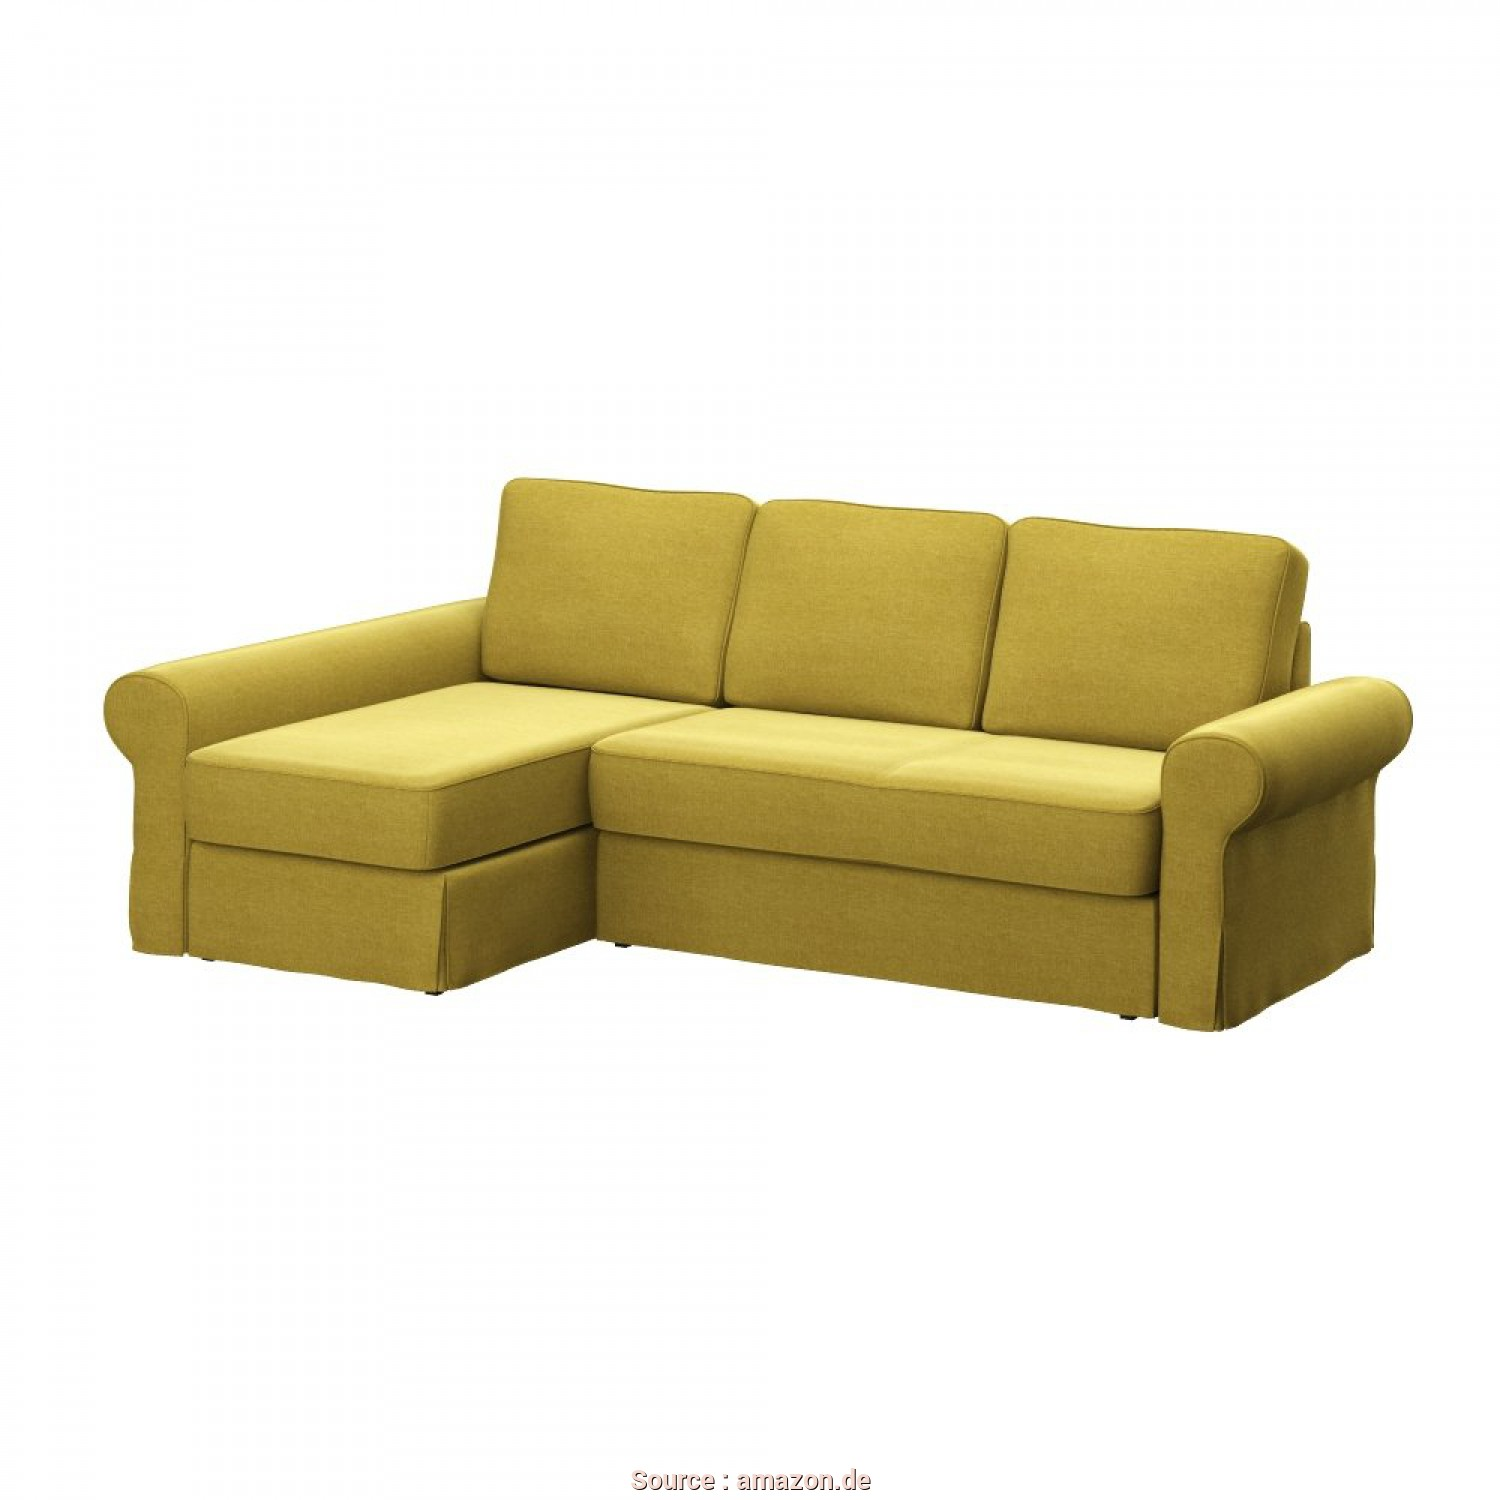 Backabro Ikea Erfahrungen, Minimalista Amazon.De: Soferia, Bezug, IKEA BACKABRO 2Er-Sofa, Recamiere, Classic Dark Yellow